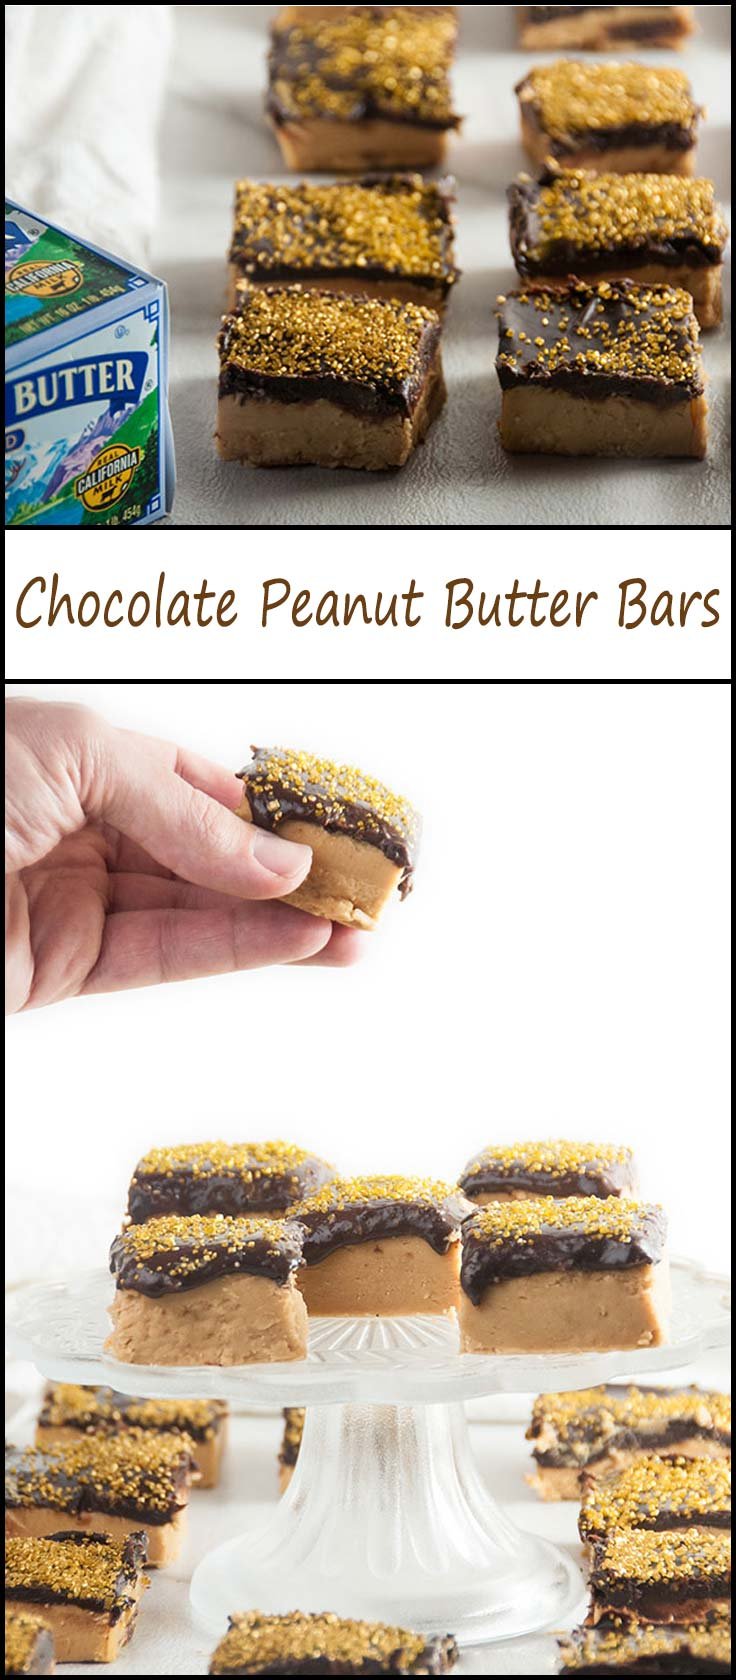 No Bake Chocolate Peanut Butter Bars from www.seasonedsprinkles.com